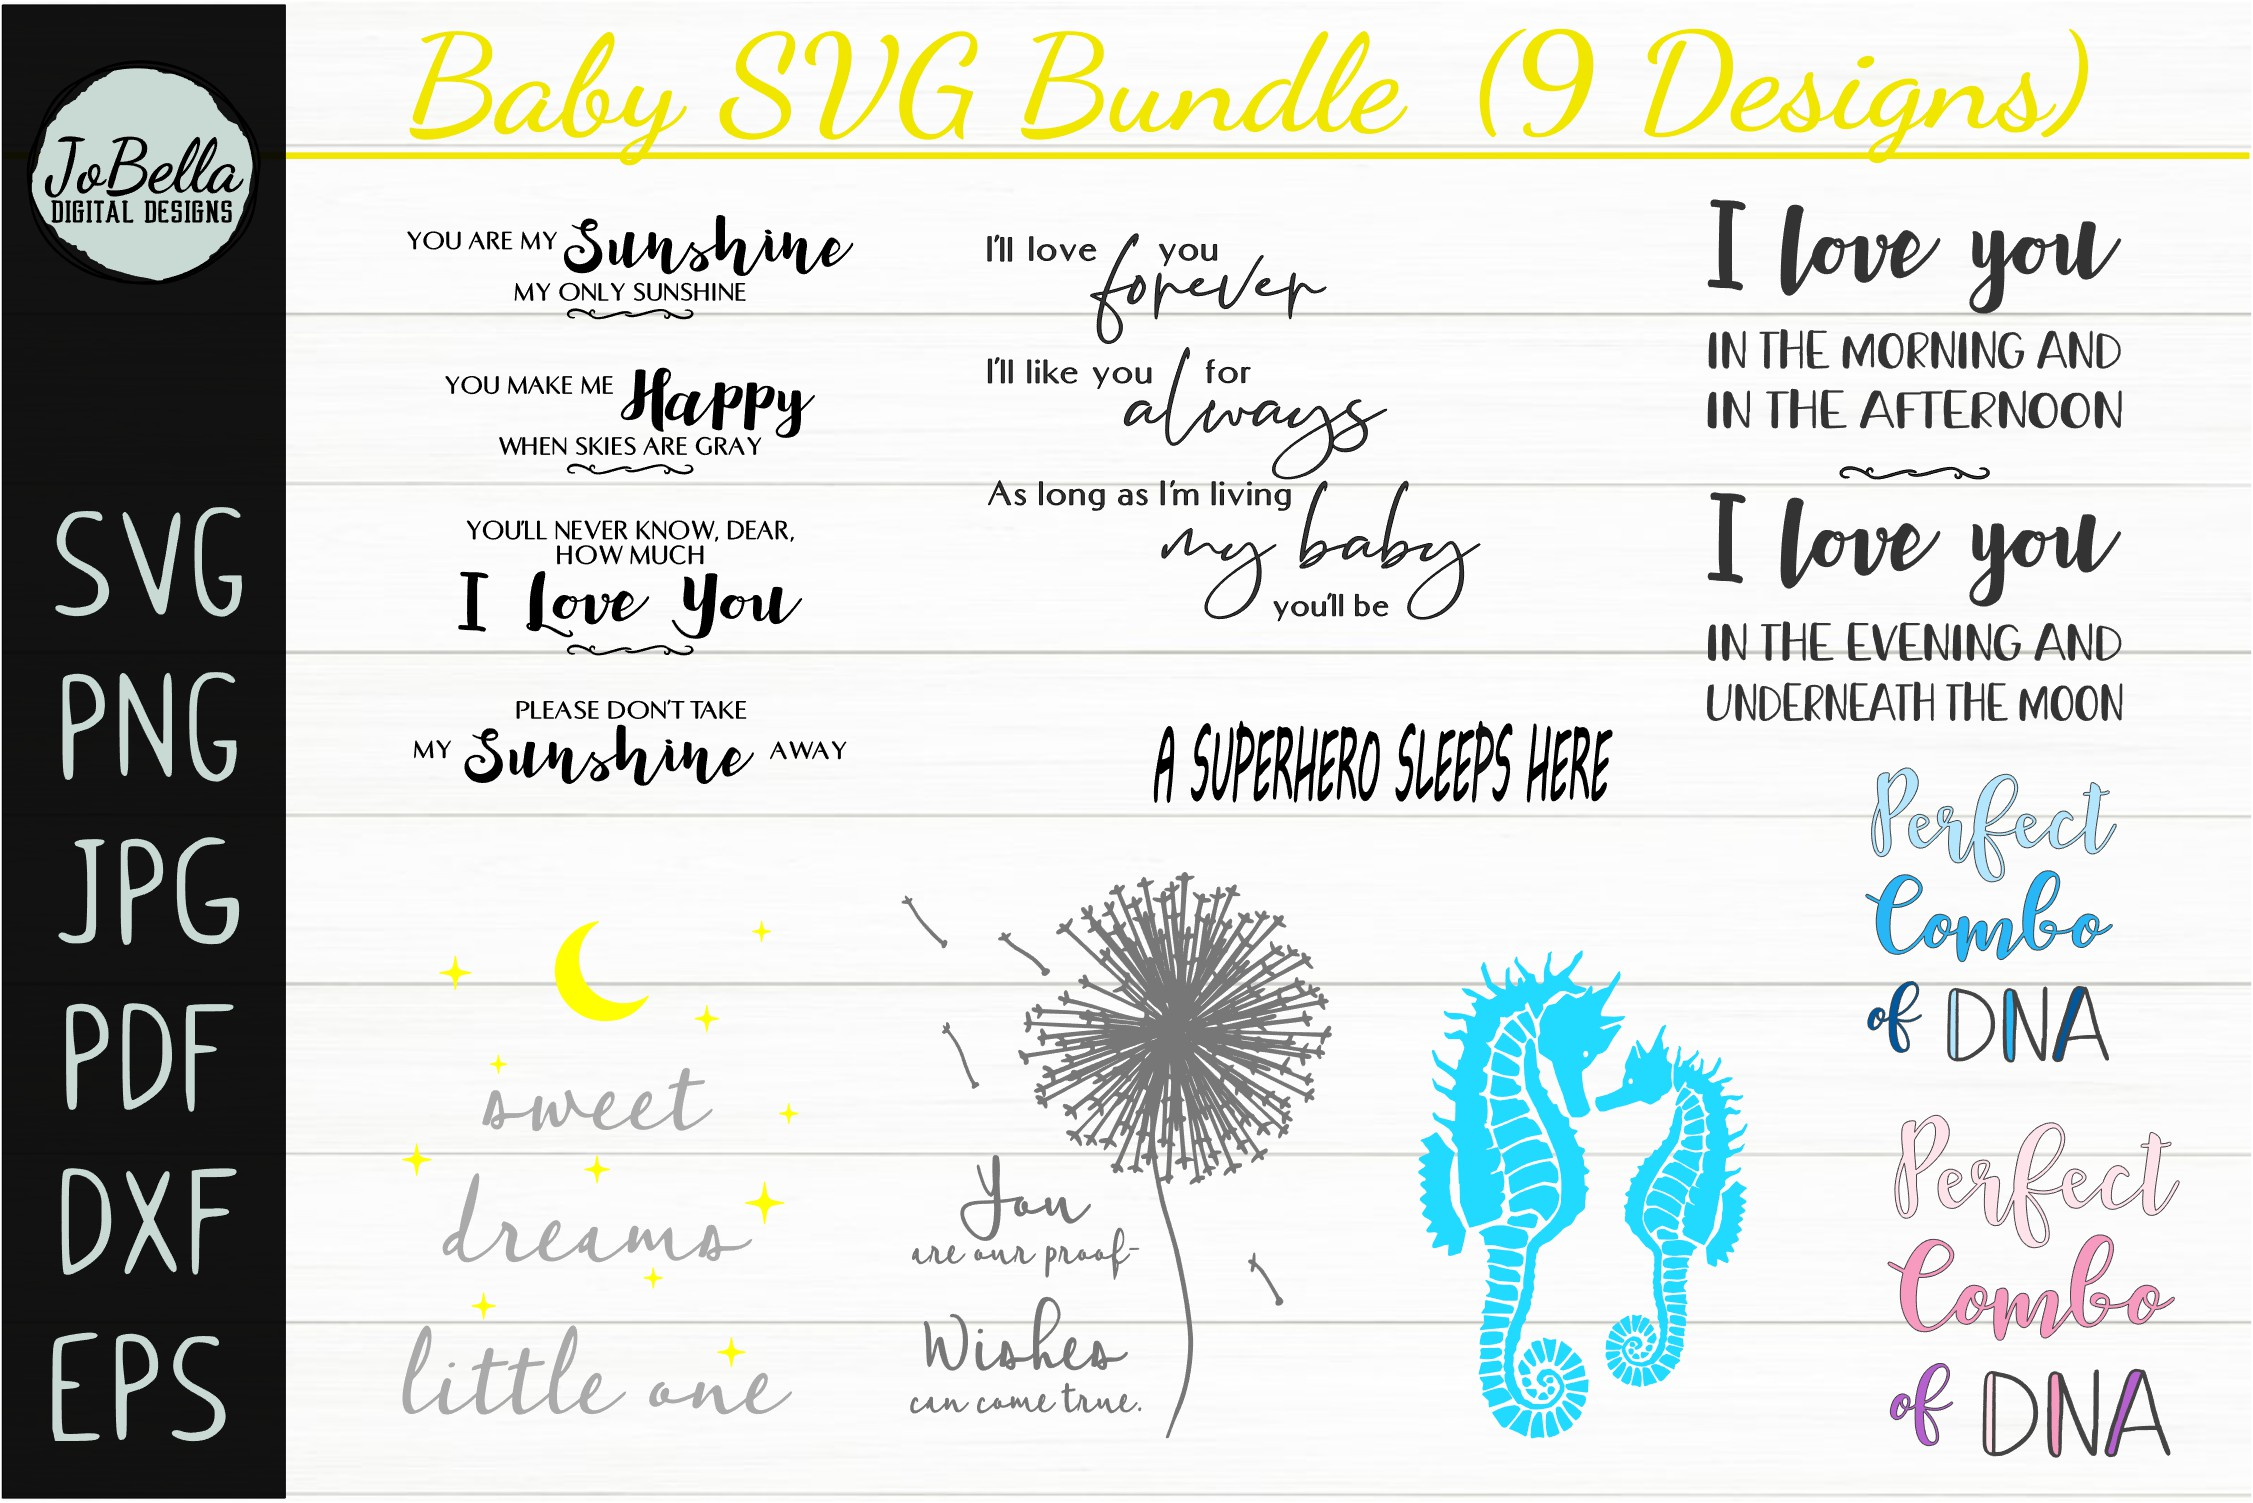 Baby SVG Bundle, Sublimation PNGs and Printables example image 1